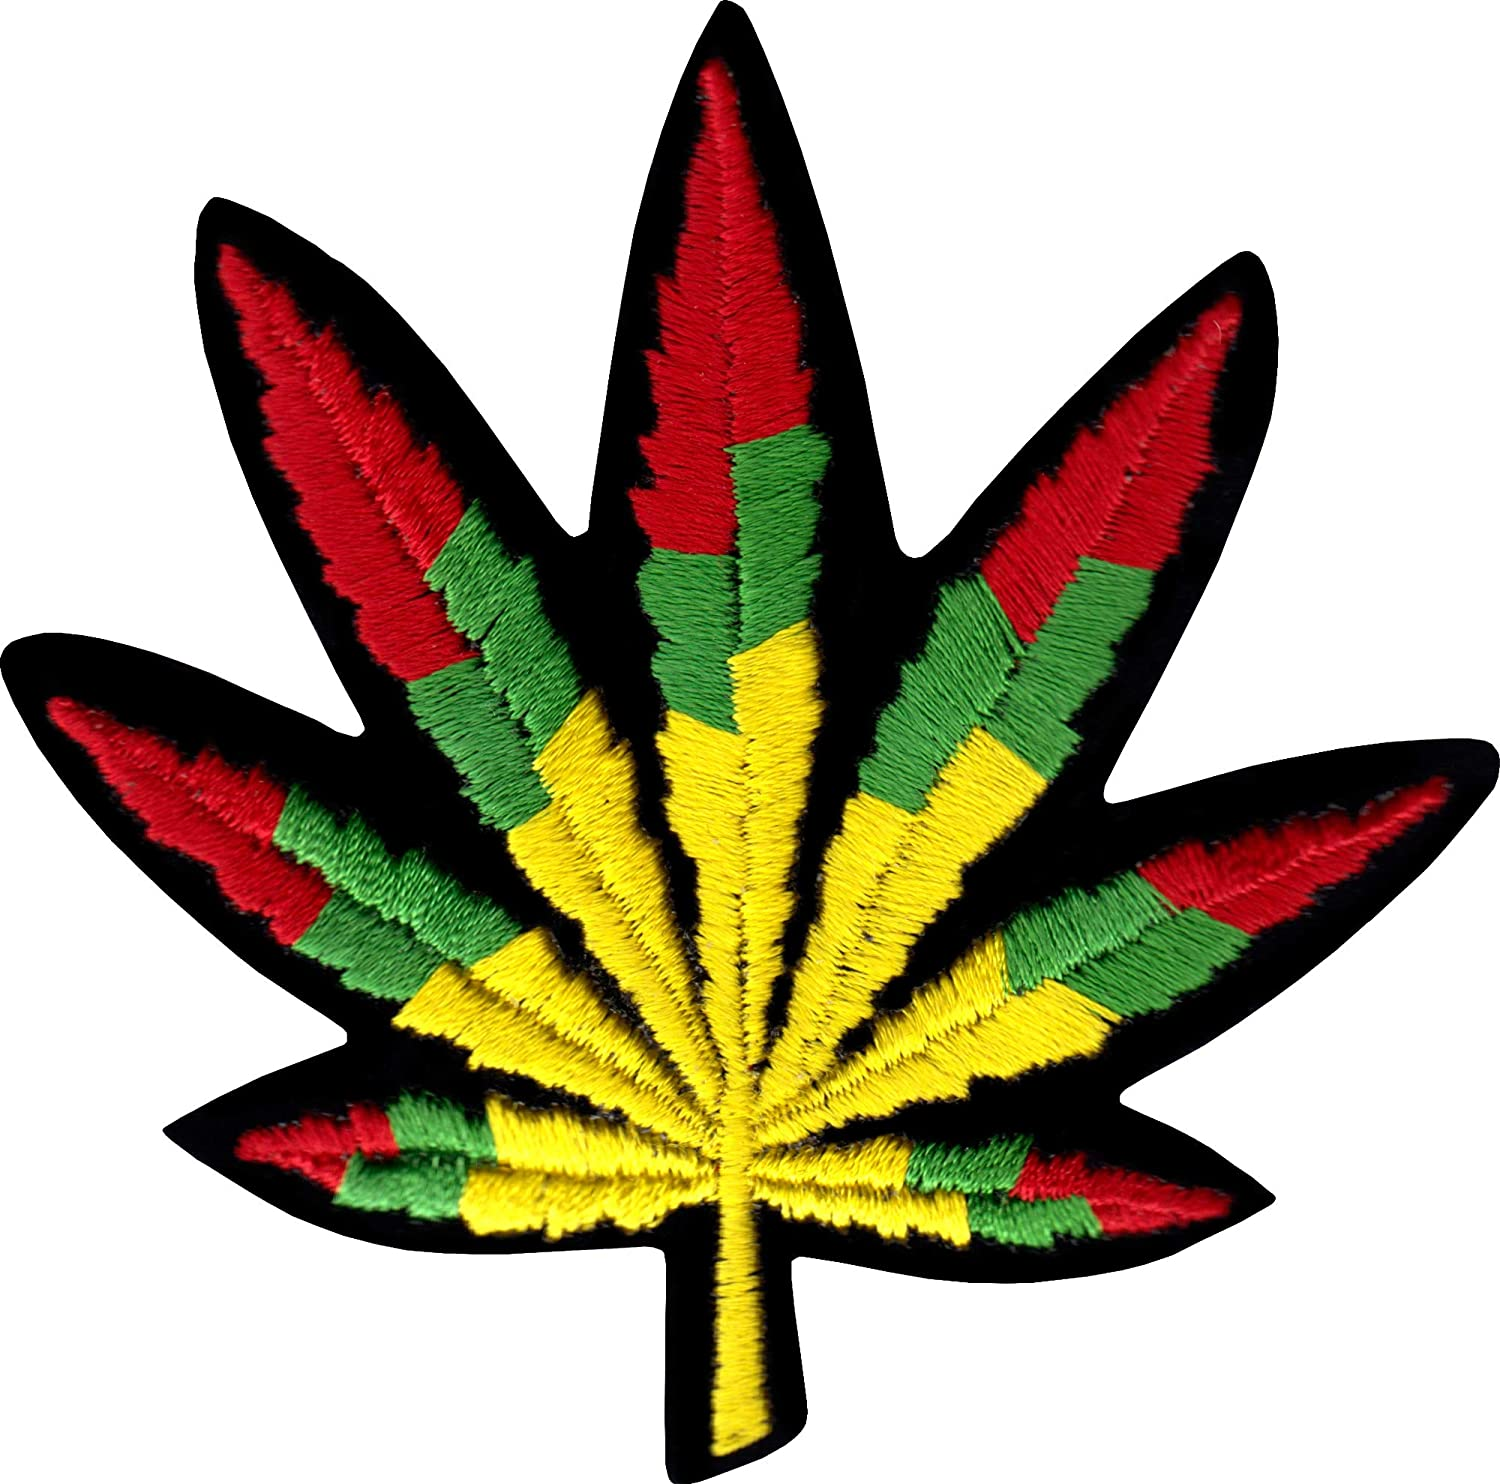 Rasta Tri-Colored Pot Leaf - Sew Or Iron On Patch 1-PTR-19054